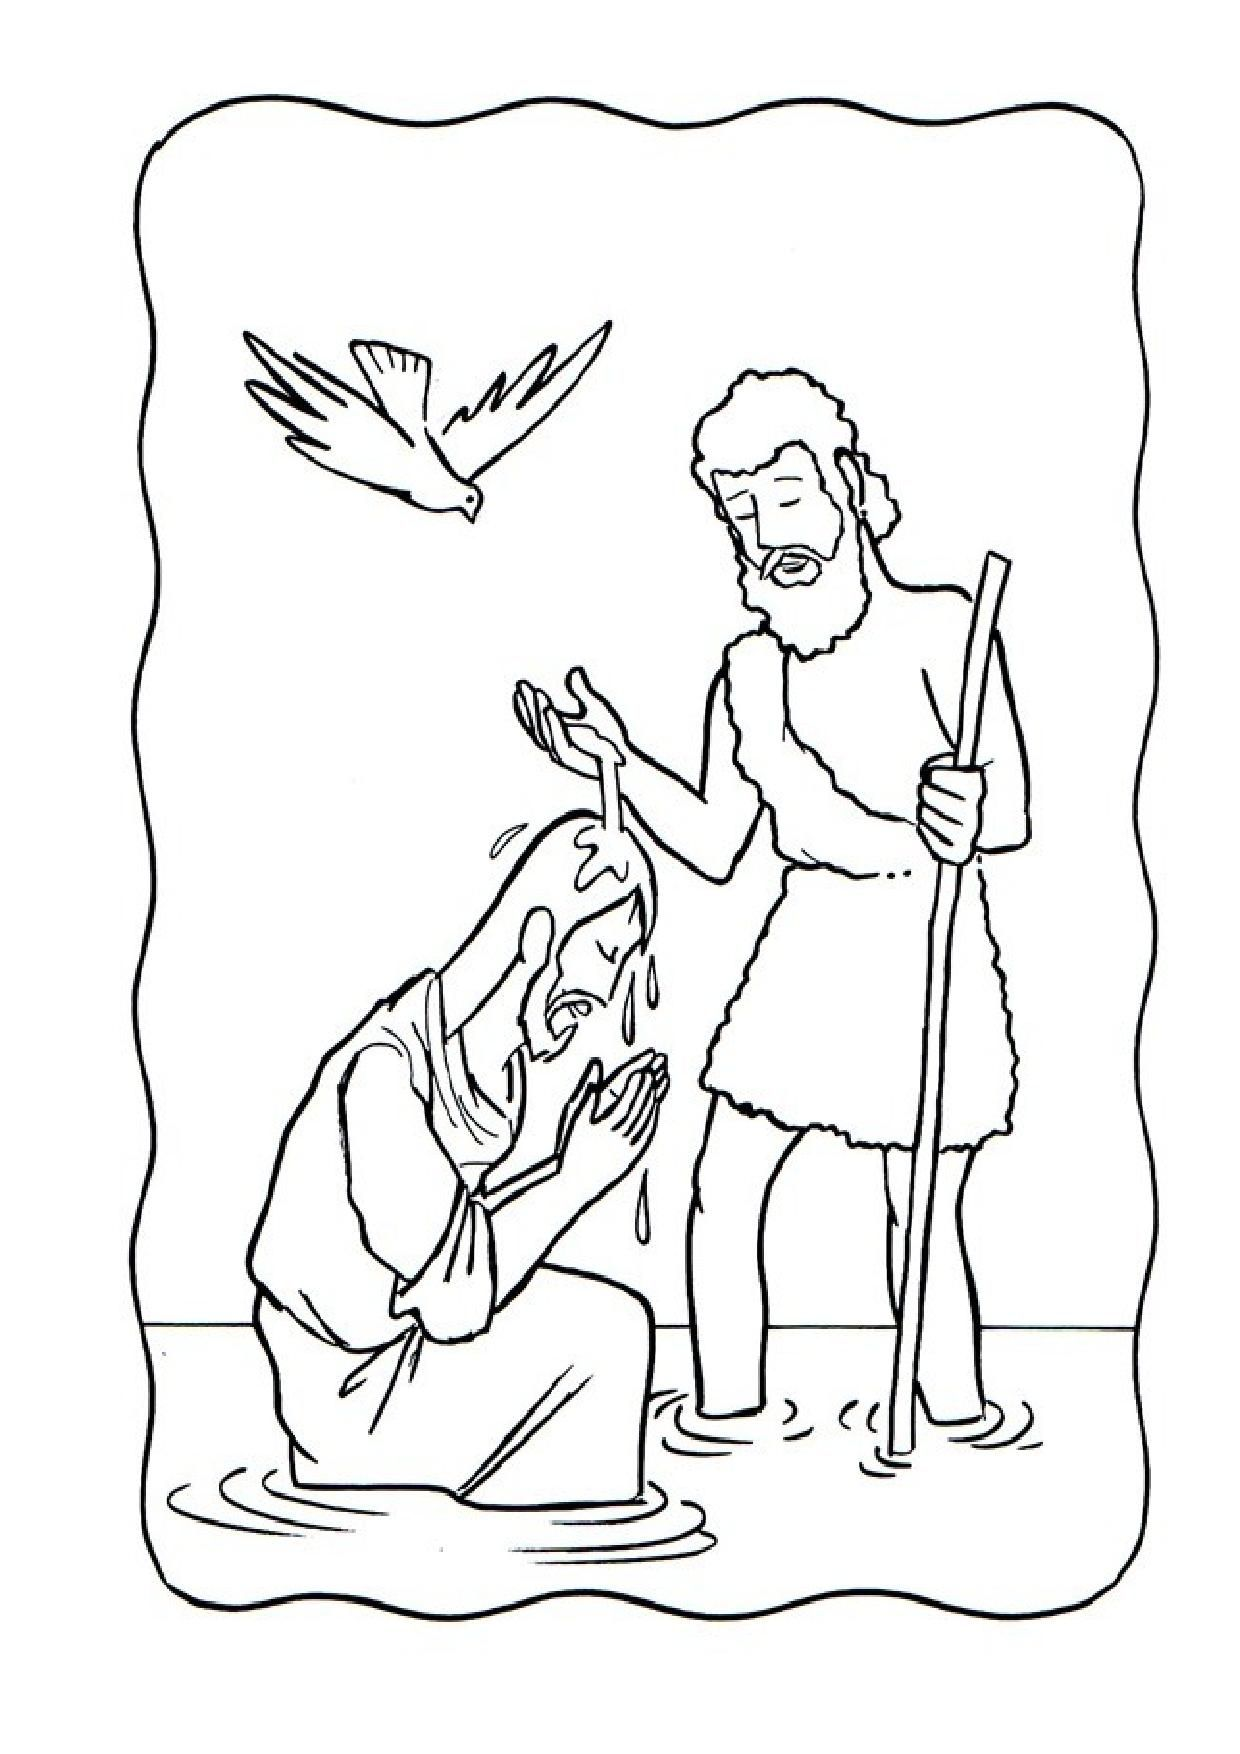 Dibujo San Juan Bautista Buscar Con Google Coloring Pages Christian Coloring Bible Coloring